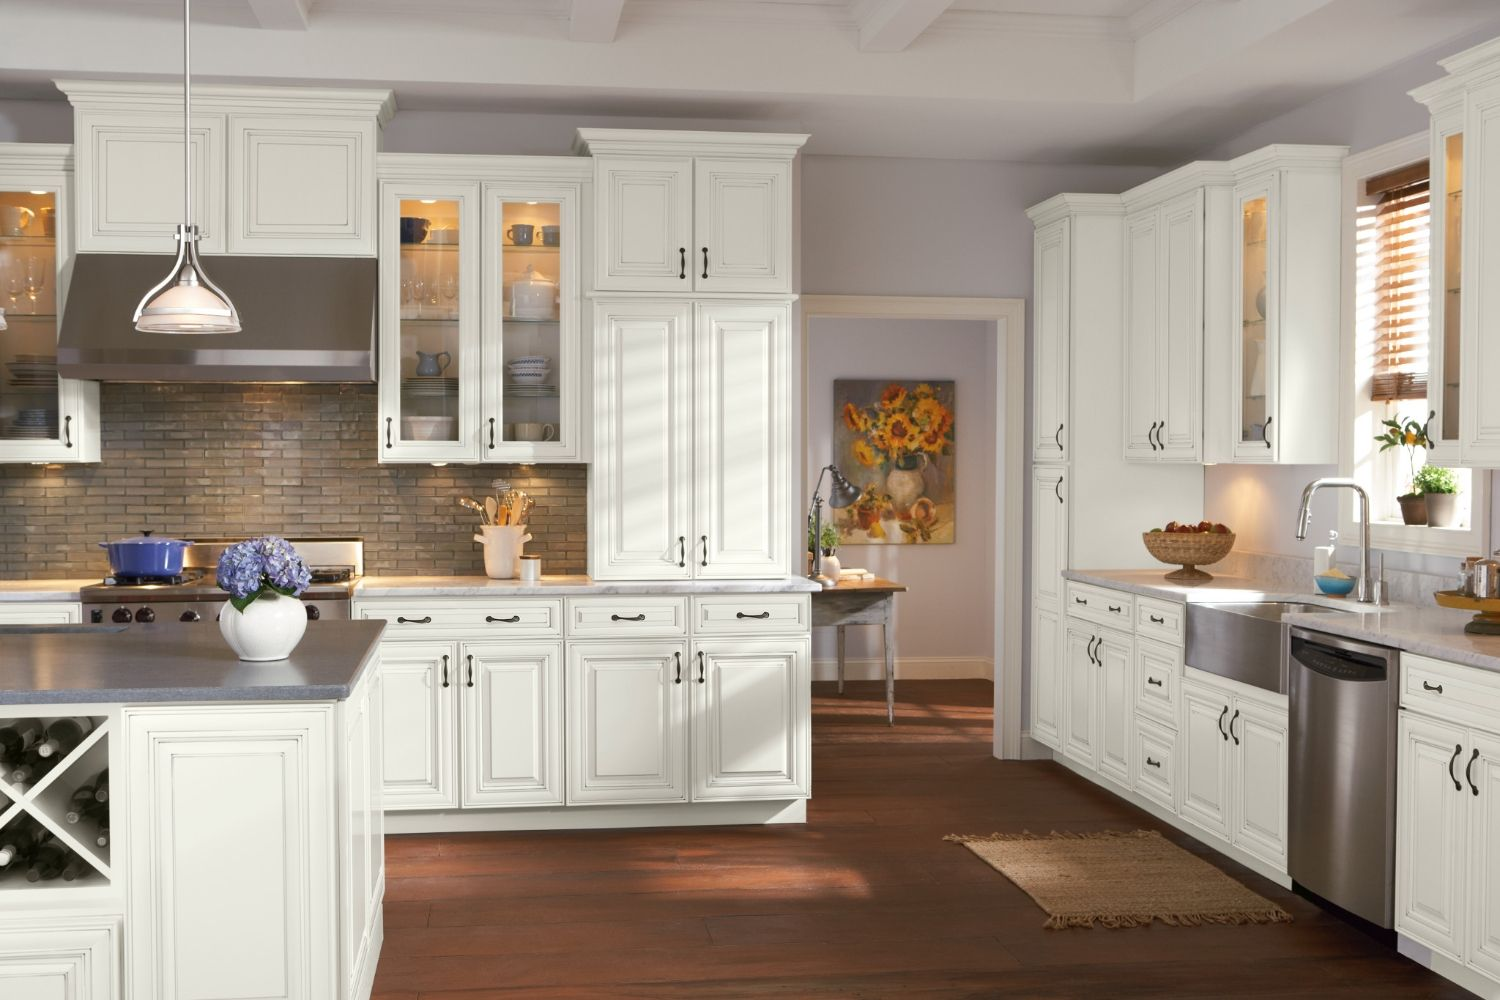 Light Dark Wood Traditional Cabinets Savannah Collection Kitchen Cabinet Styles Traditional Cabinets Kitchen Cabinets